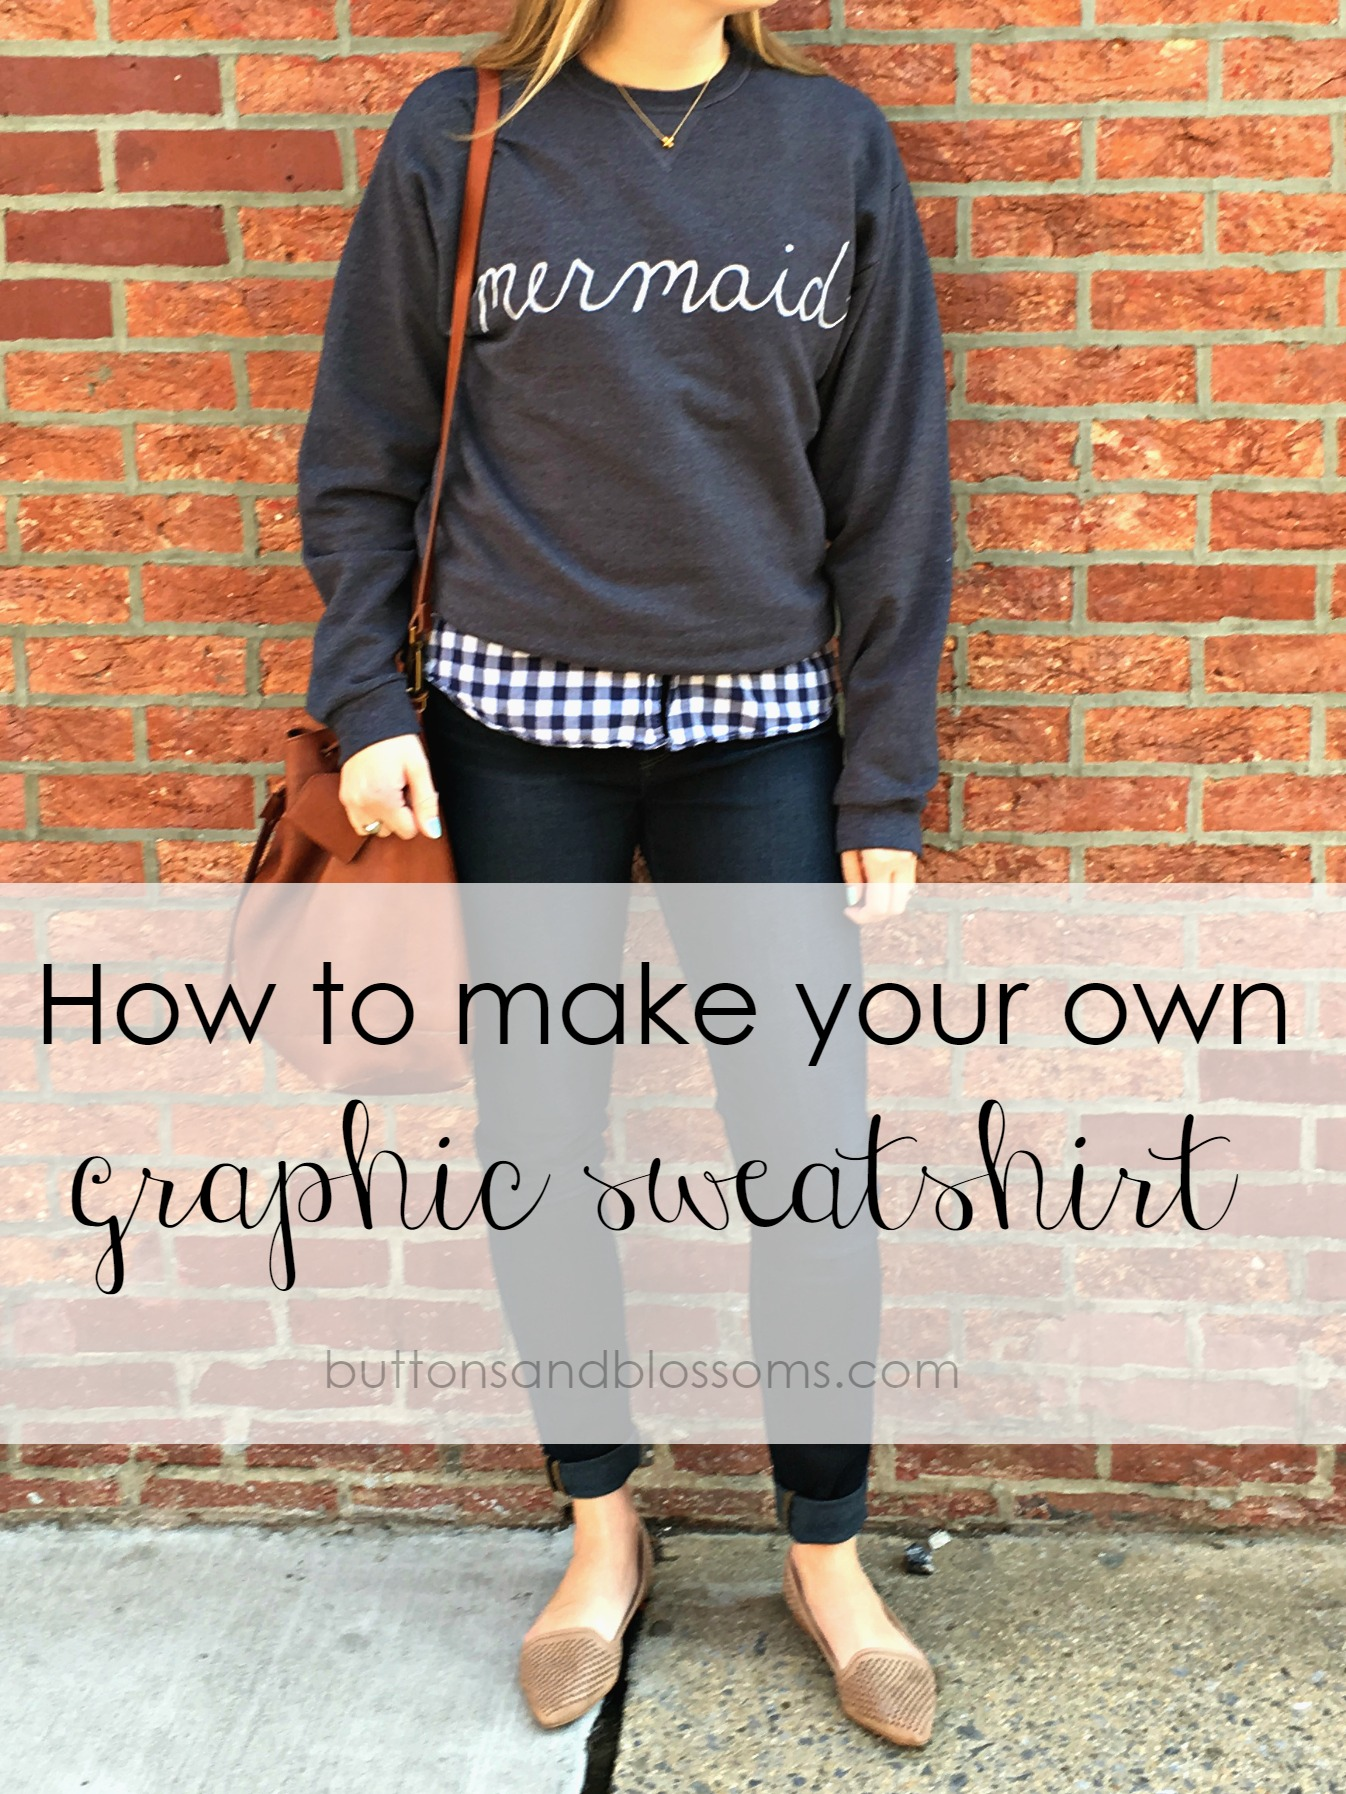 How To Make Your Own Graphic Sweatshirt // a diy fashion project from buttons & blossoms